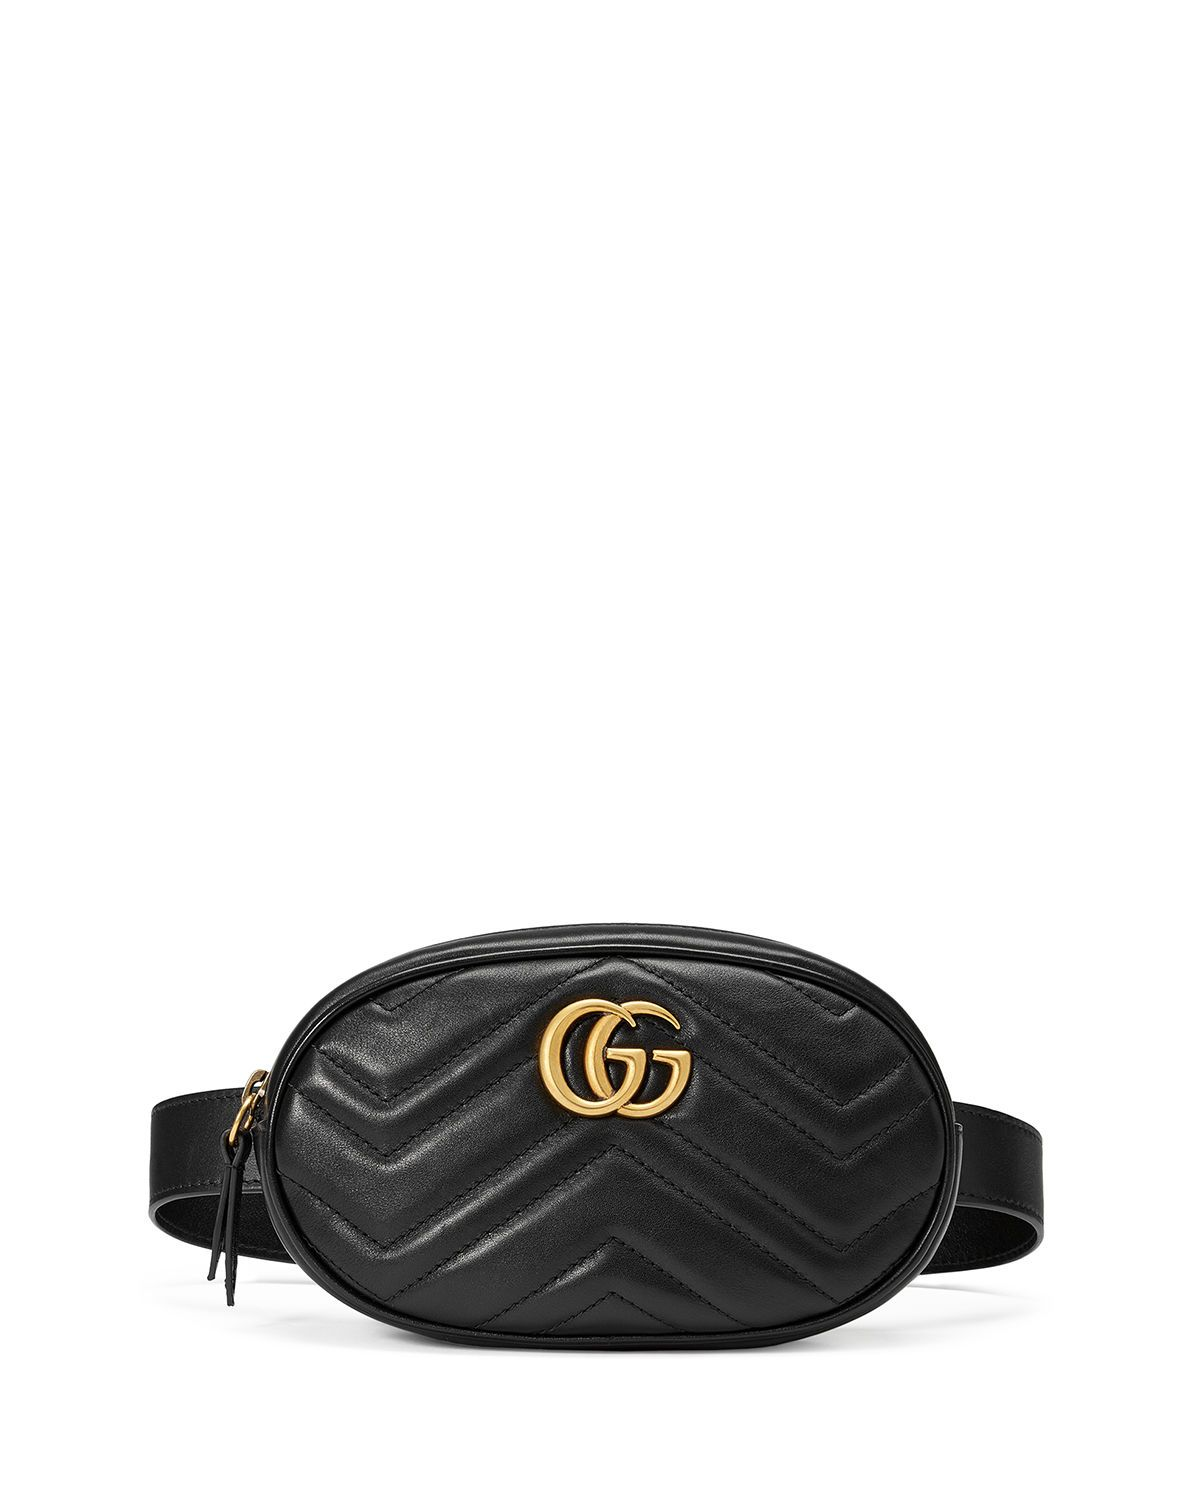 d30748bb9d7 GG Marmont Small Matelasse Leather Belt Bag